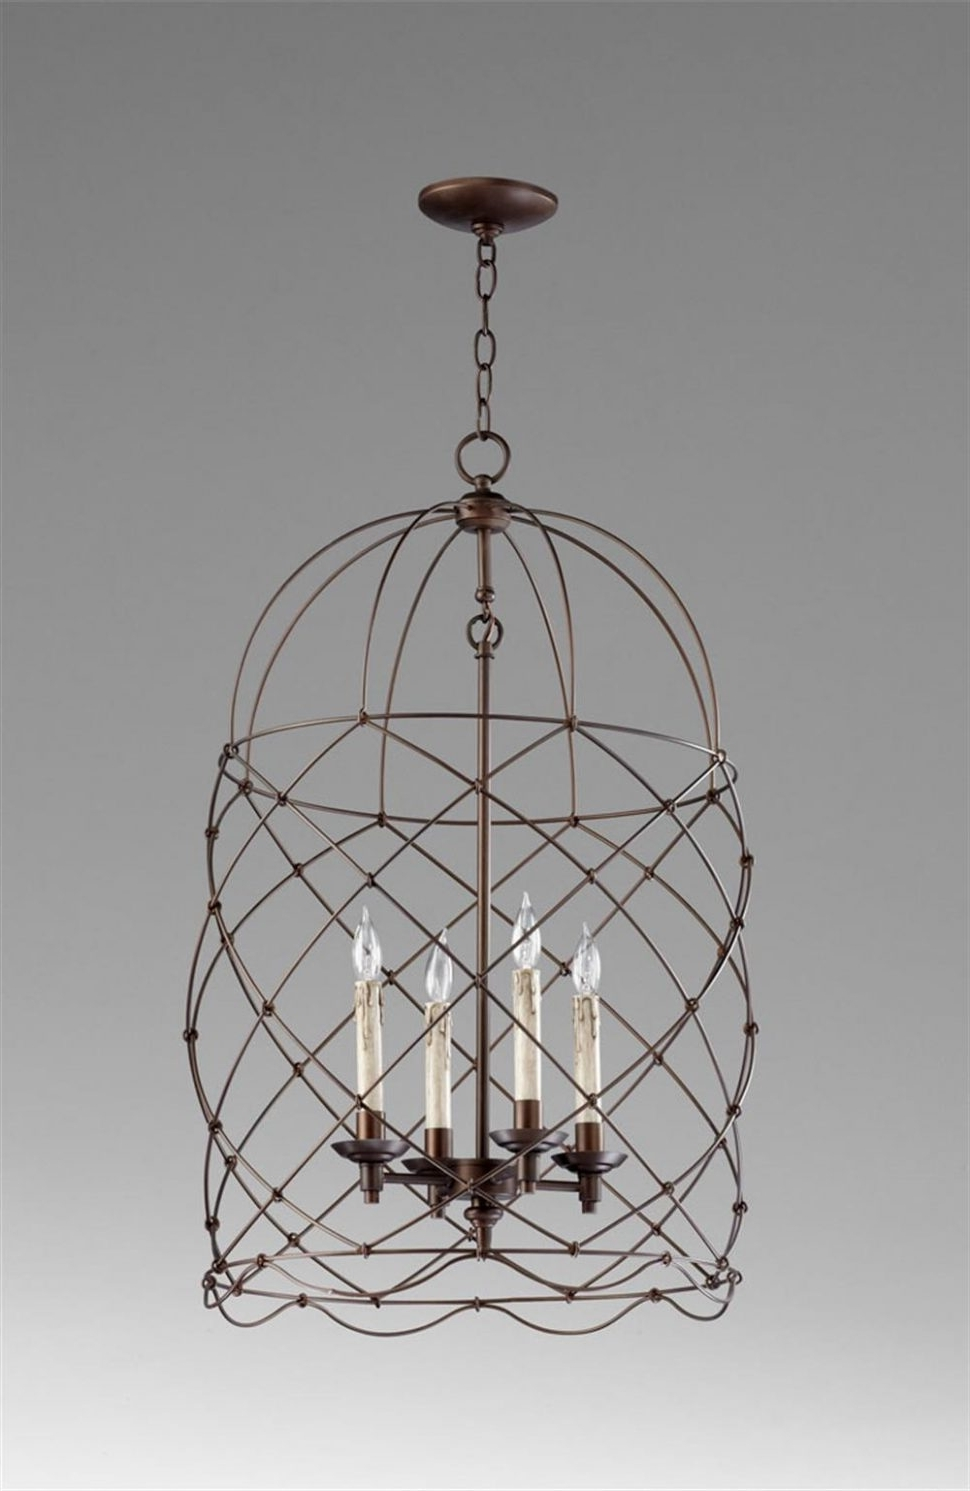 Chandeliers Design : Magnificent Cage Chandelier Lighting Currey Inside 2019 Cage Chandeliers (View 8 of 20)